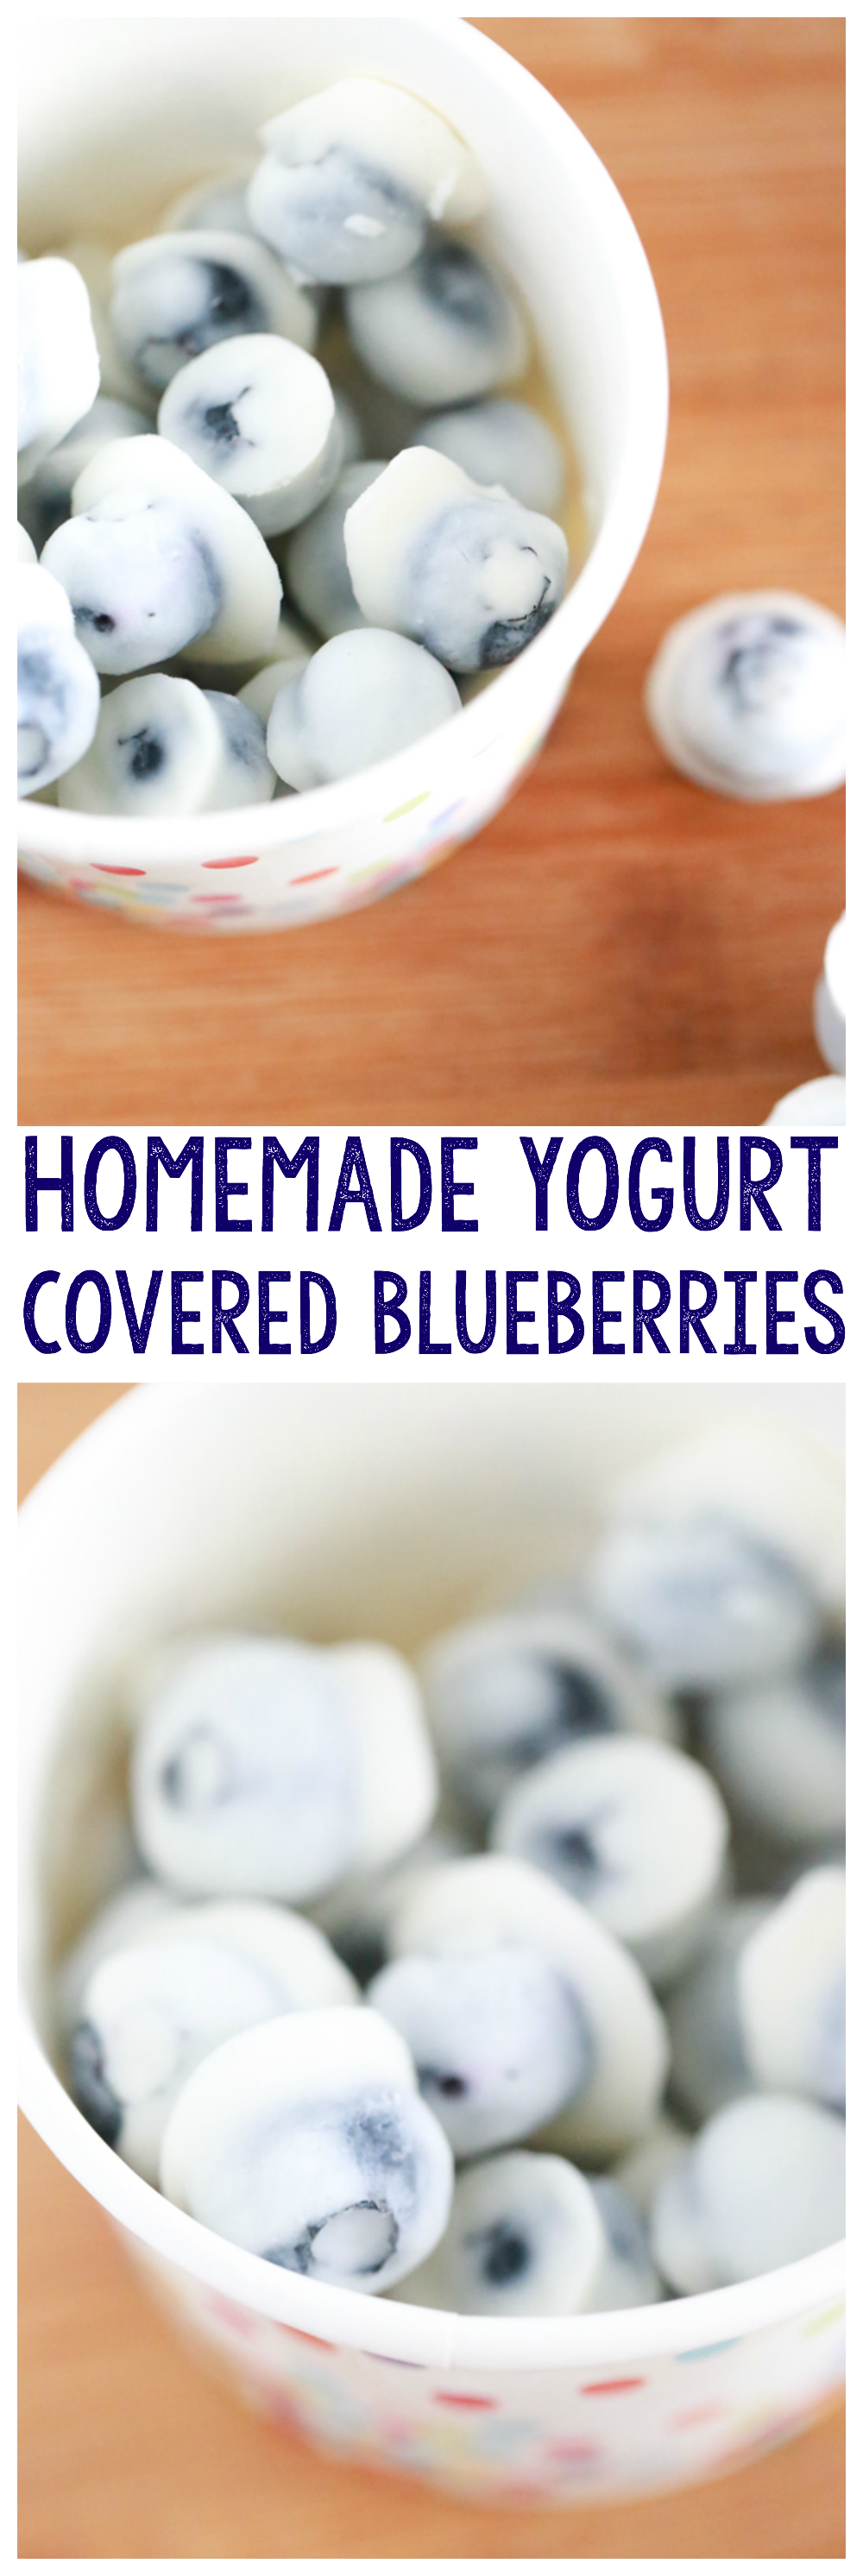 For a fun, popable treat this summer, enjoy these Homemade Yogurt Covered Blueberries. So easy to make and they taste delicious.